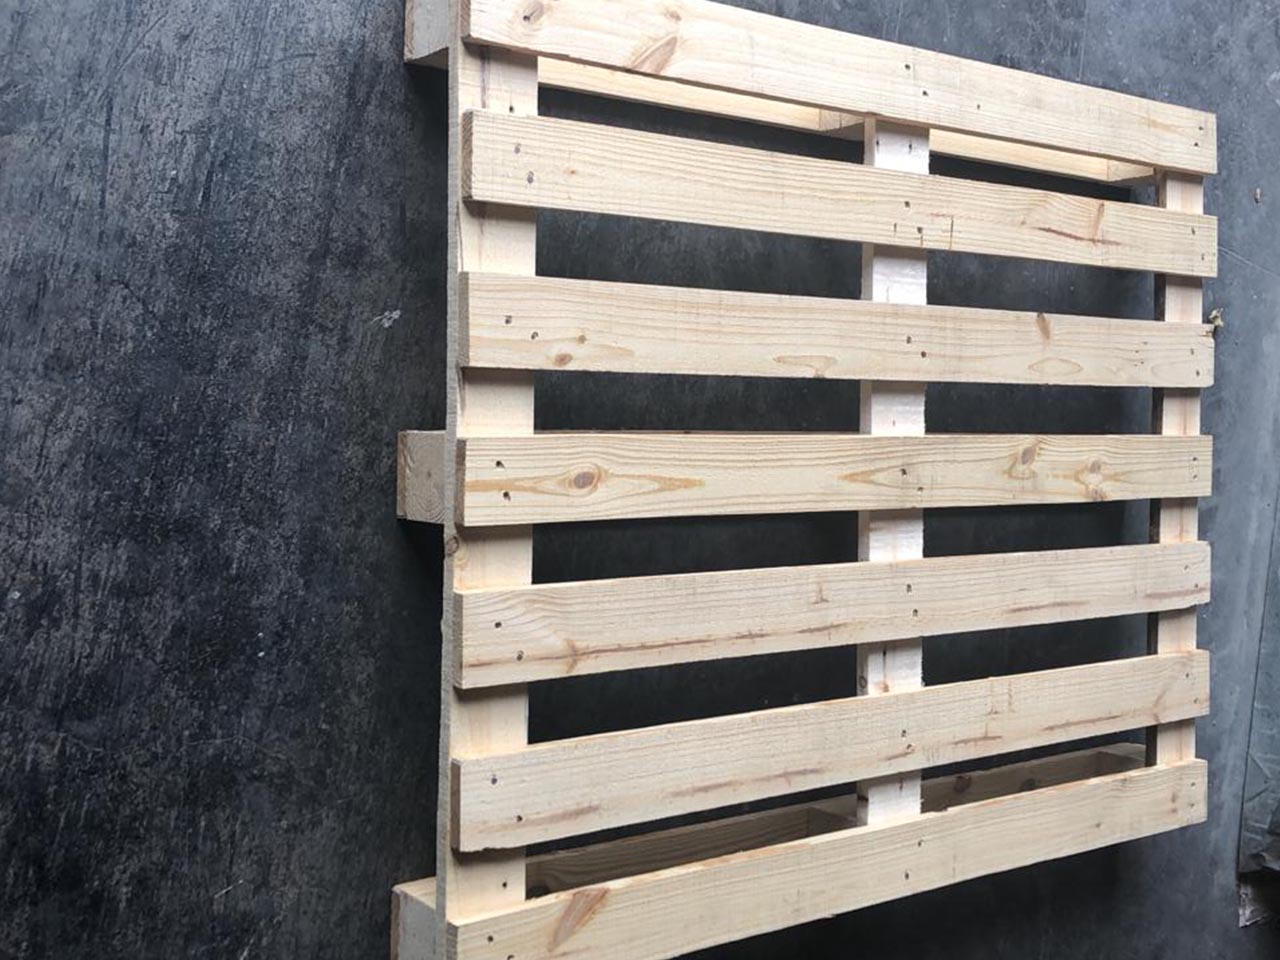 pallet manufacturers in uae